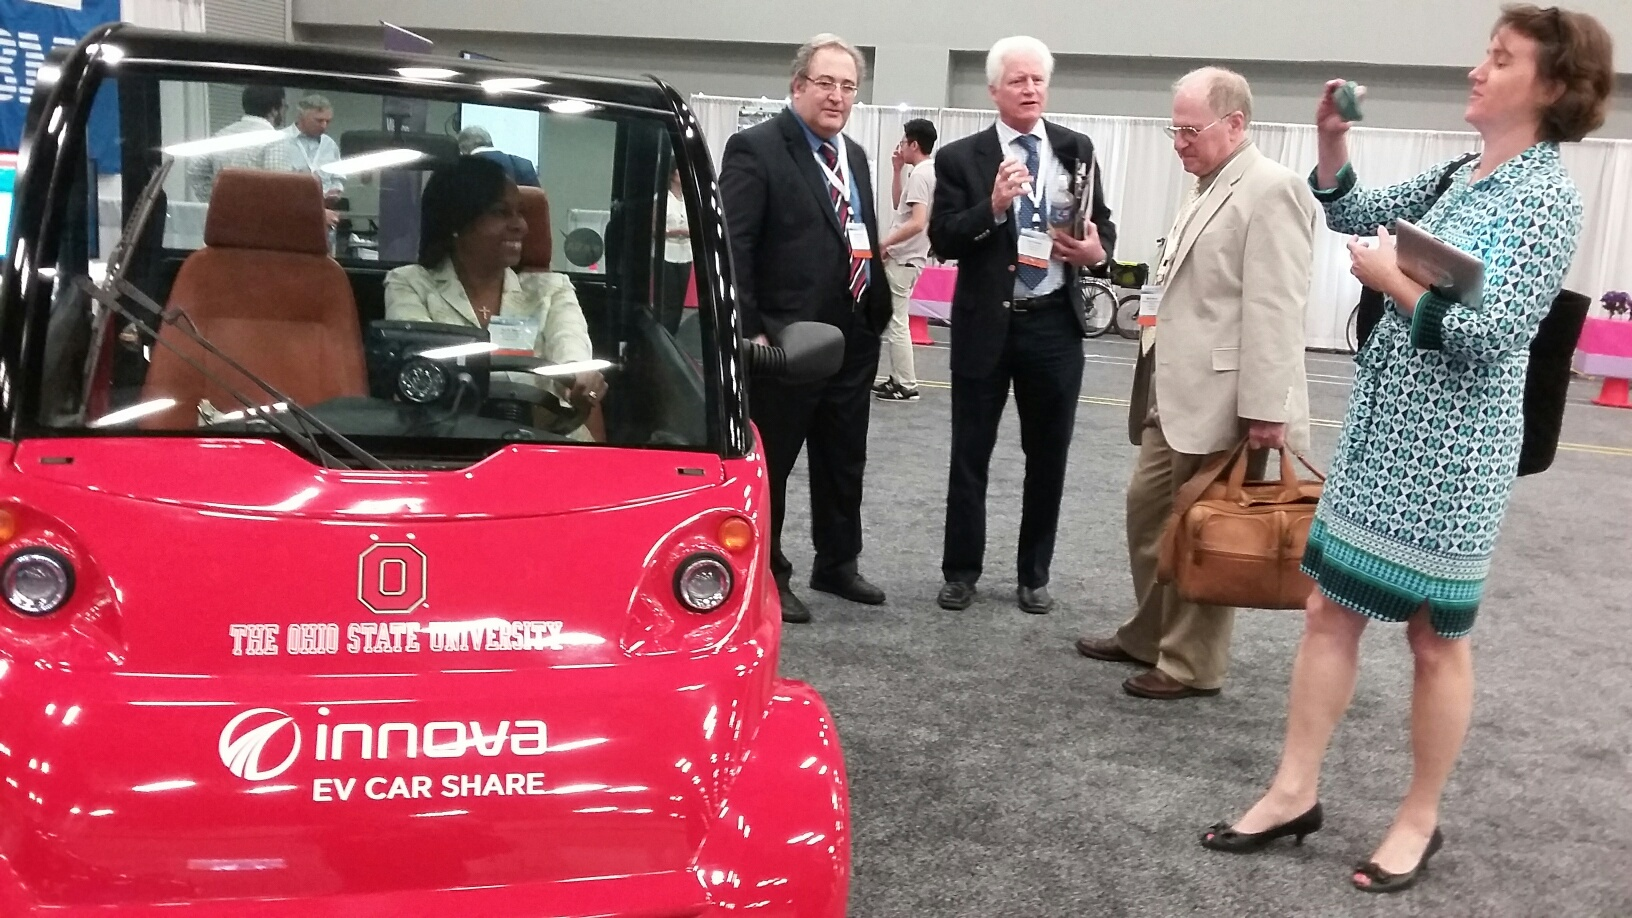 Mayor Ivy Taylor sits in an Innova EV Dash which is used in a carshare program at Ohio State University and four other universities. Photo by Edmond Ortiz.